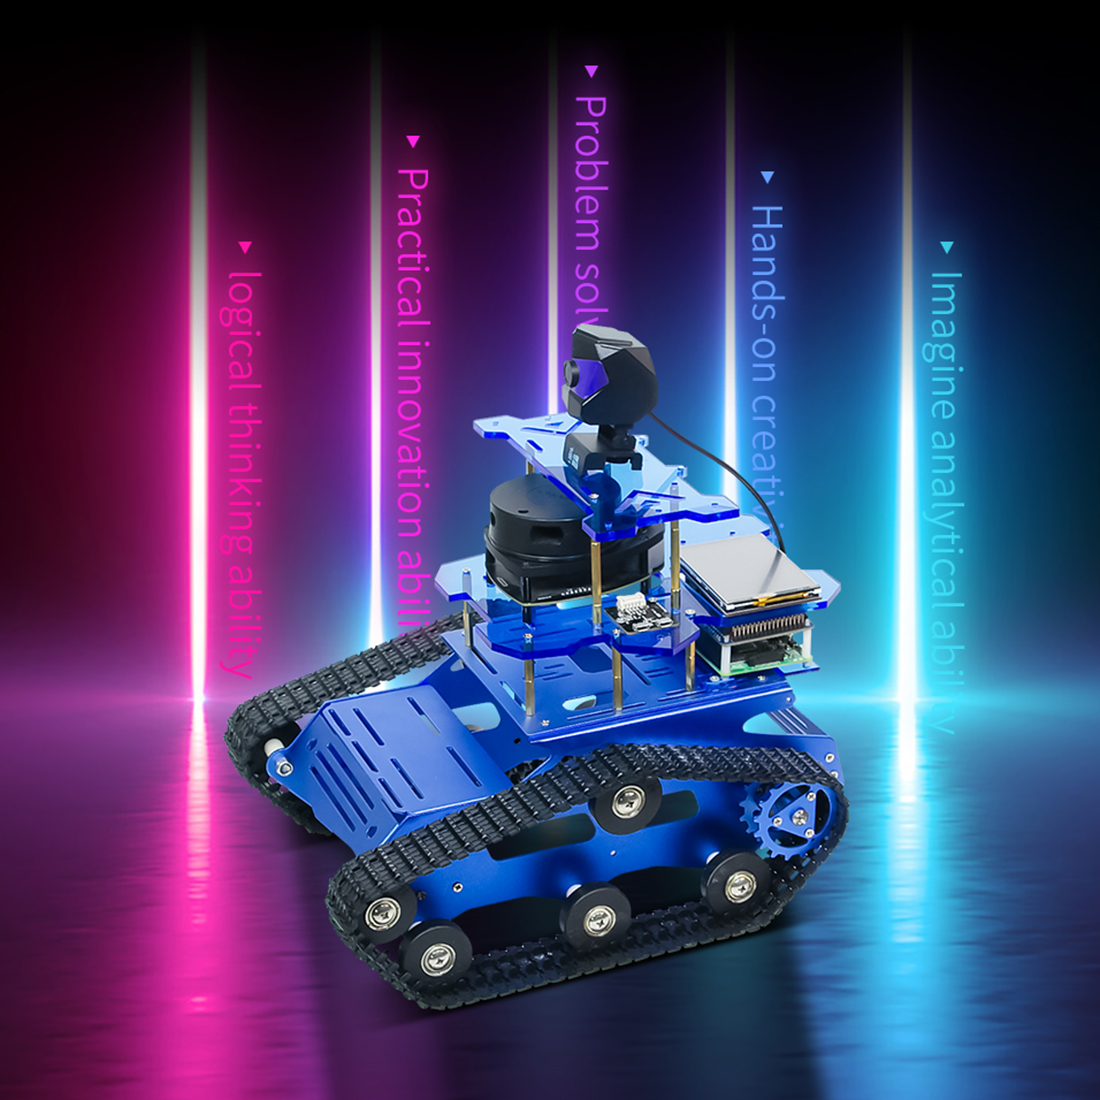 DIY Smart Programmable Robot Tank Chassis Car With Laser Radar For Raspberry Pi 4 (2G) For Kids Adults Gift - Black